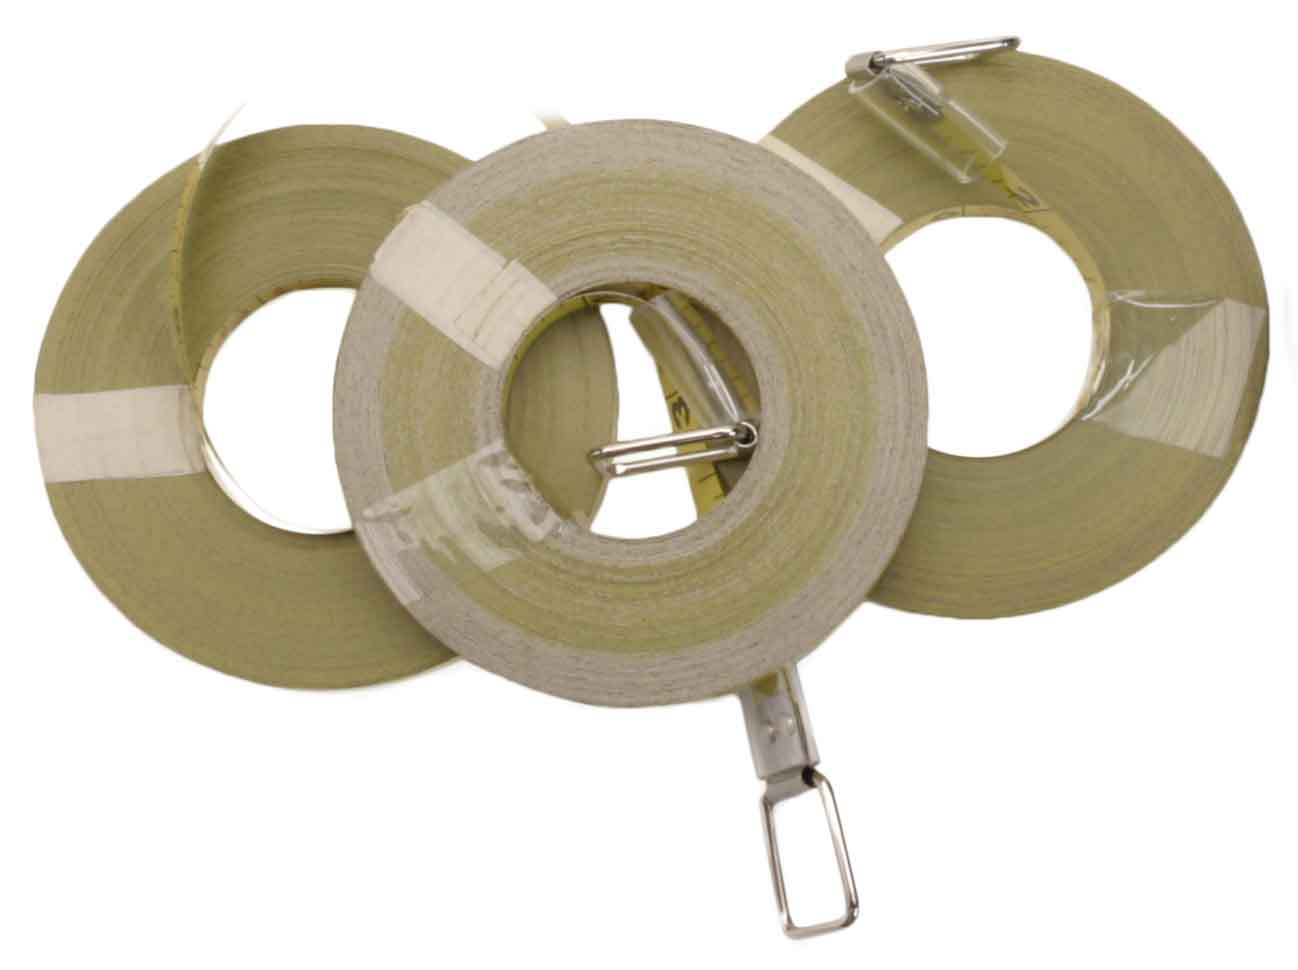 TAP 985DC - 05) Spencer 985DC - 75ft Combination Tape Refill